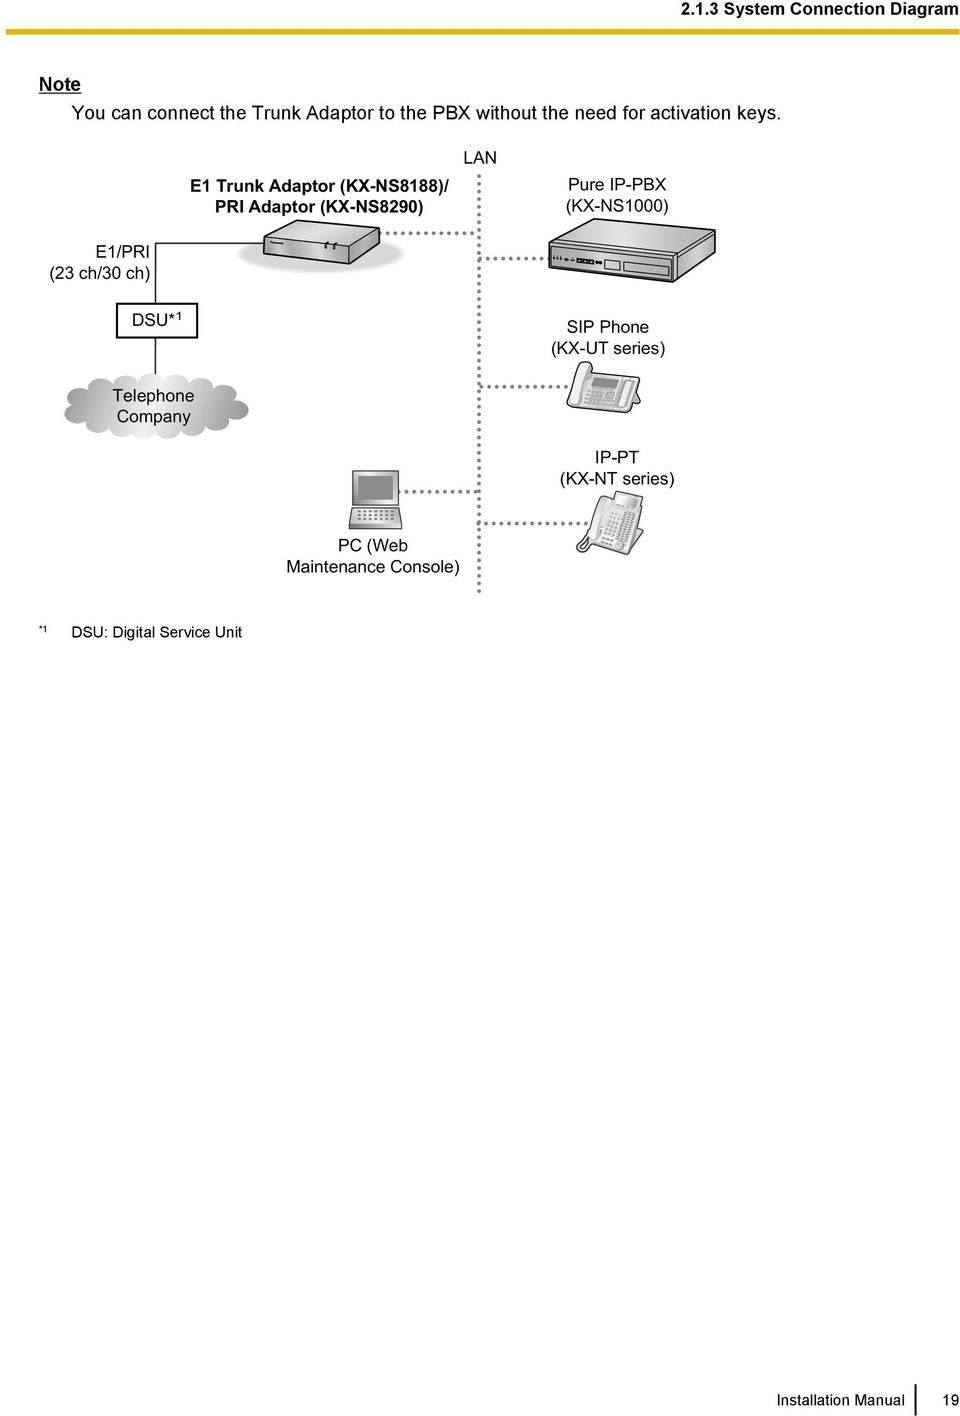 Ip Pbx Wiring Diagram Schematics Pri Installation Manual Kx Ns8290 E1 Trunk Adaptor Model Tdm